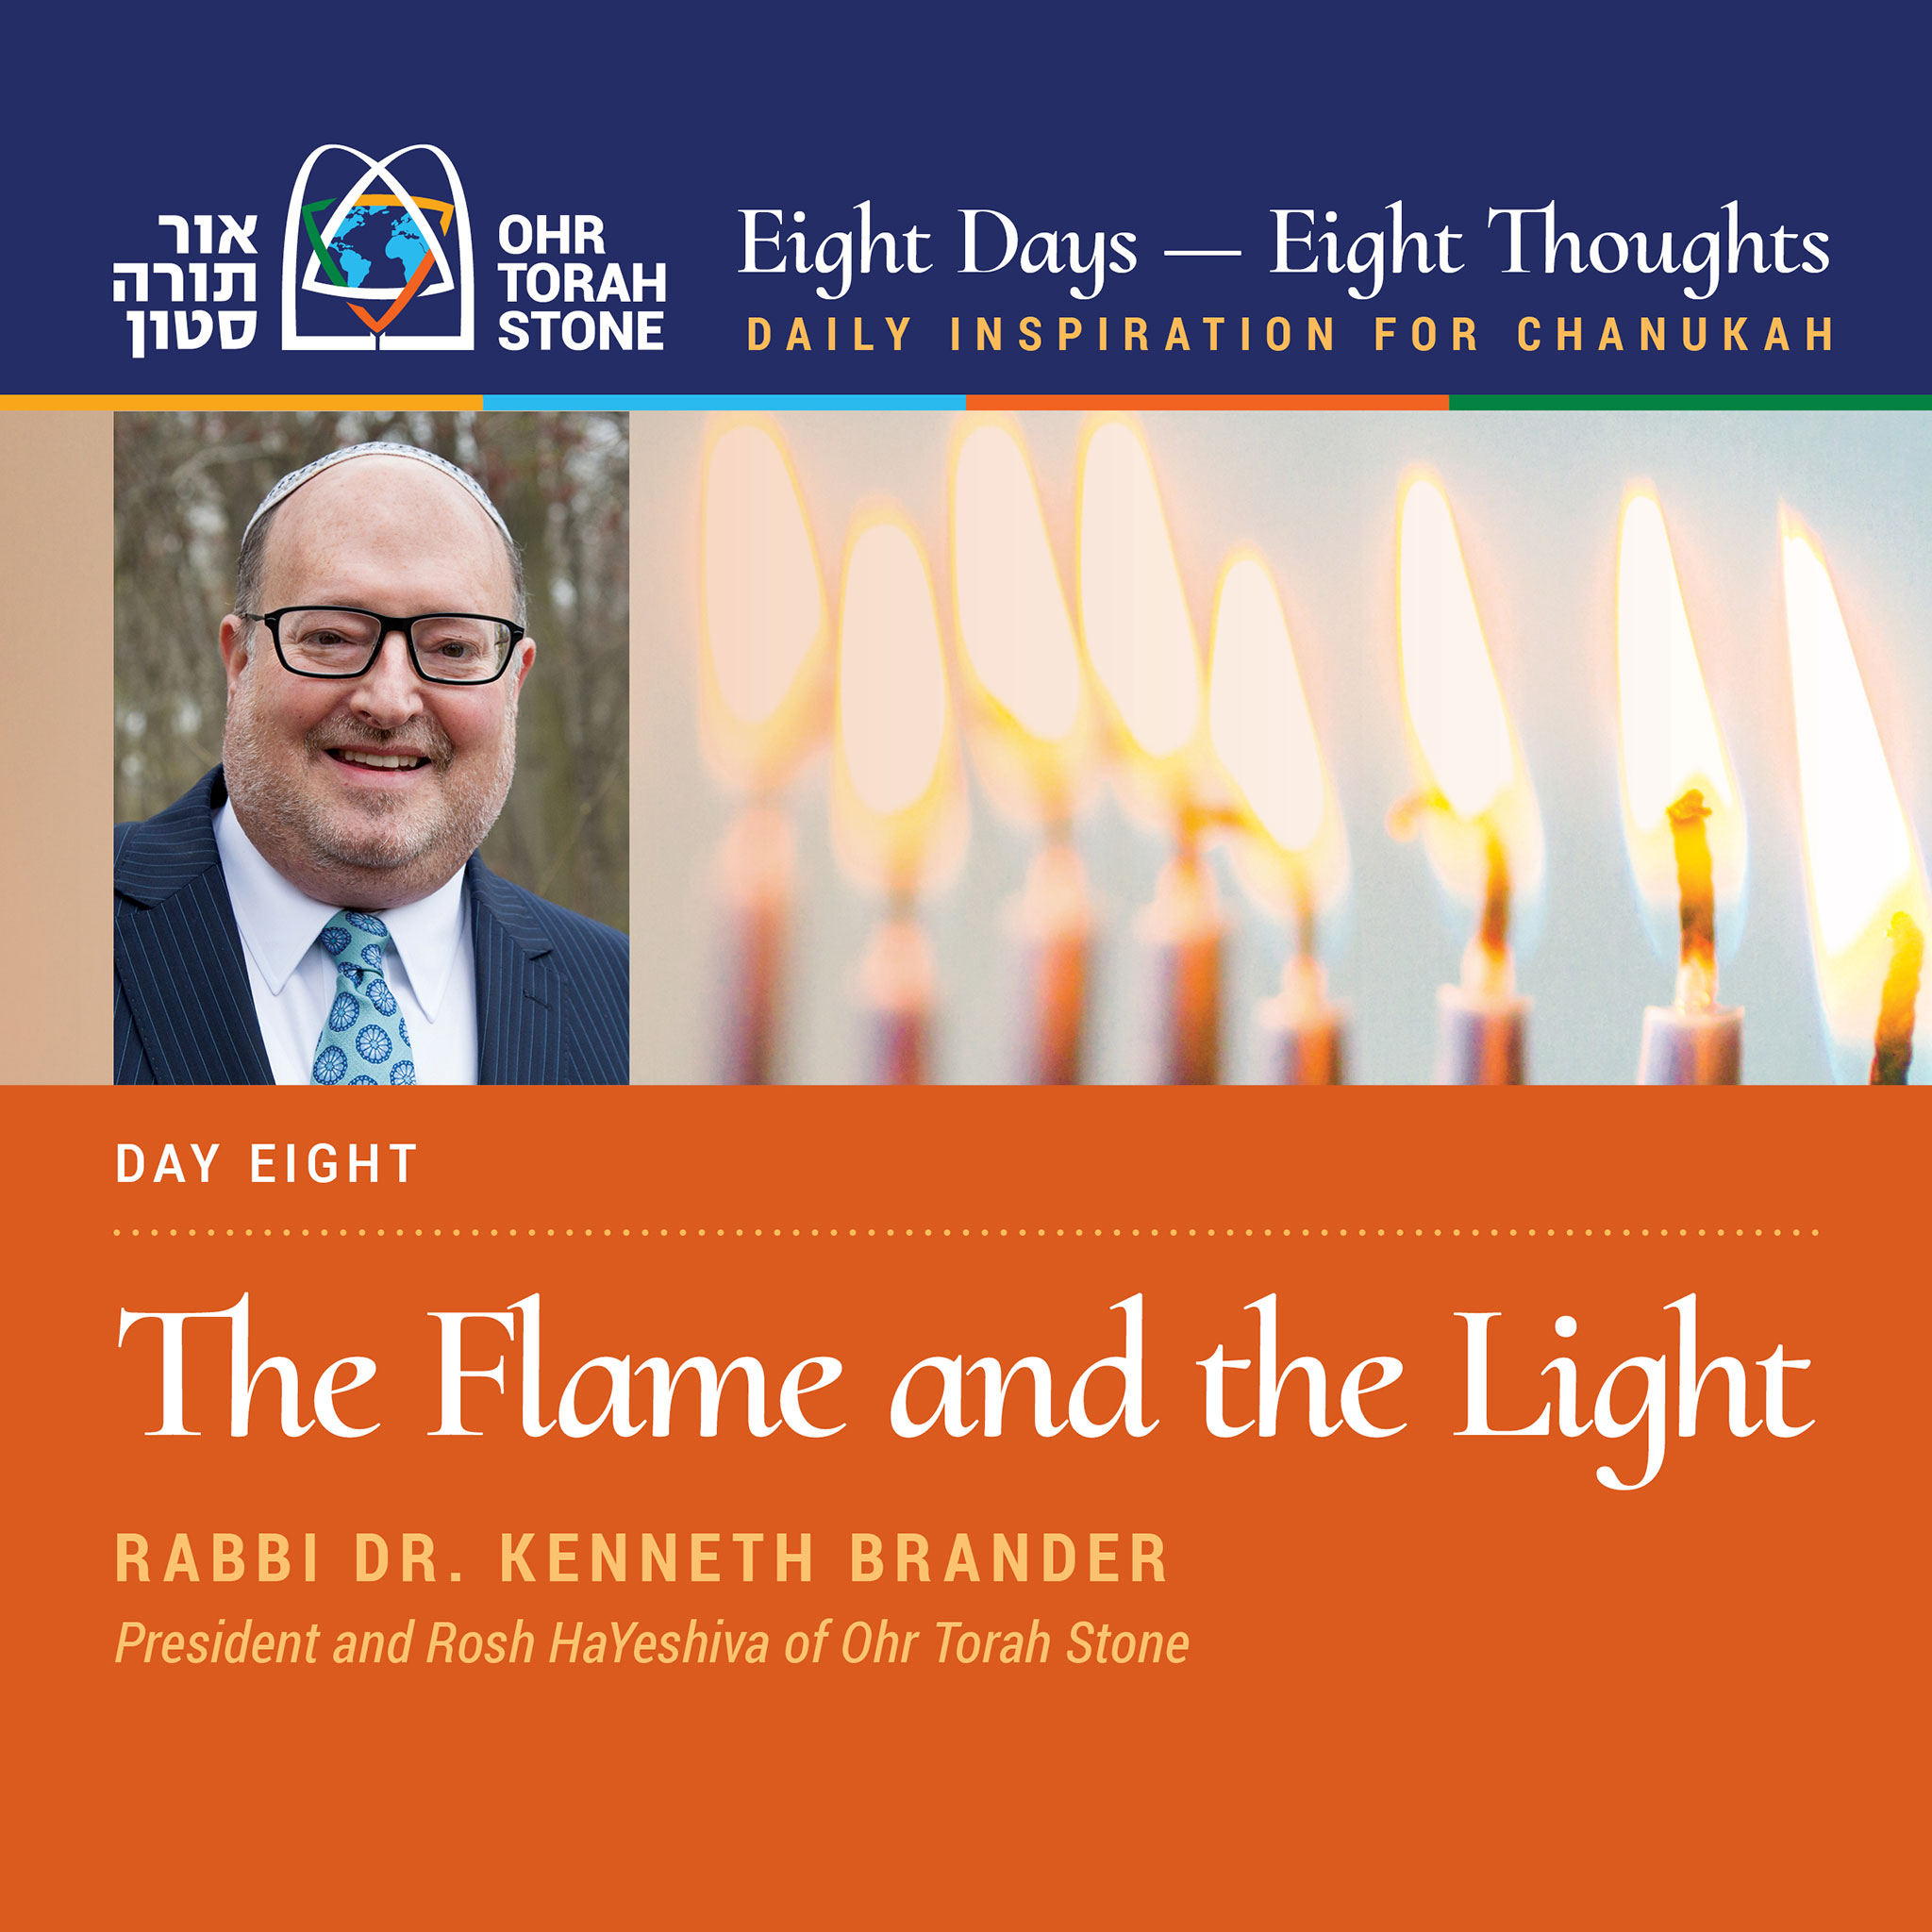 Chanukah Rabbi Brander